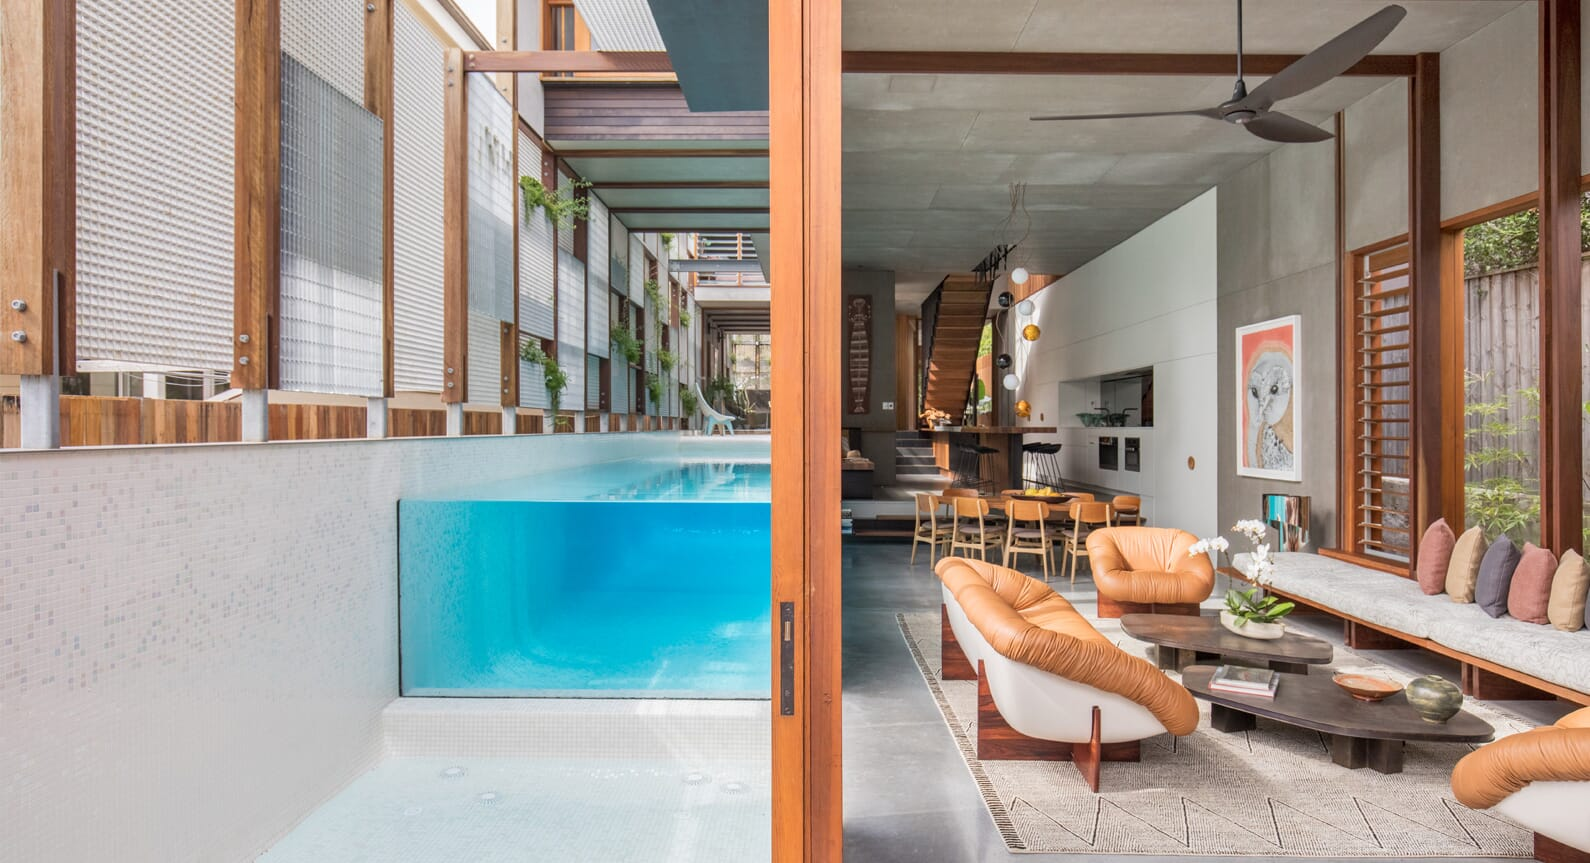 A Mix Of Light & Privacy: The Living Screen House in North Bondi